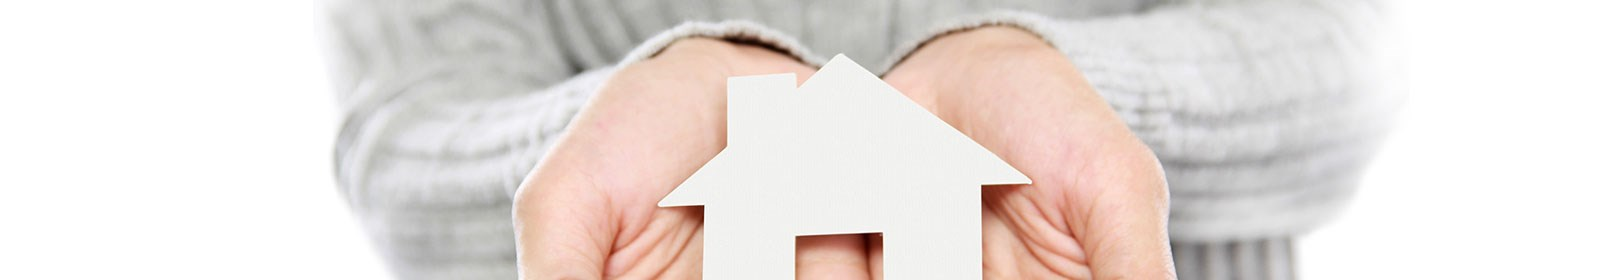 How long does a home loan approval process take?